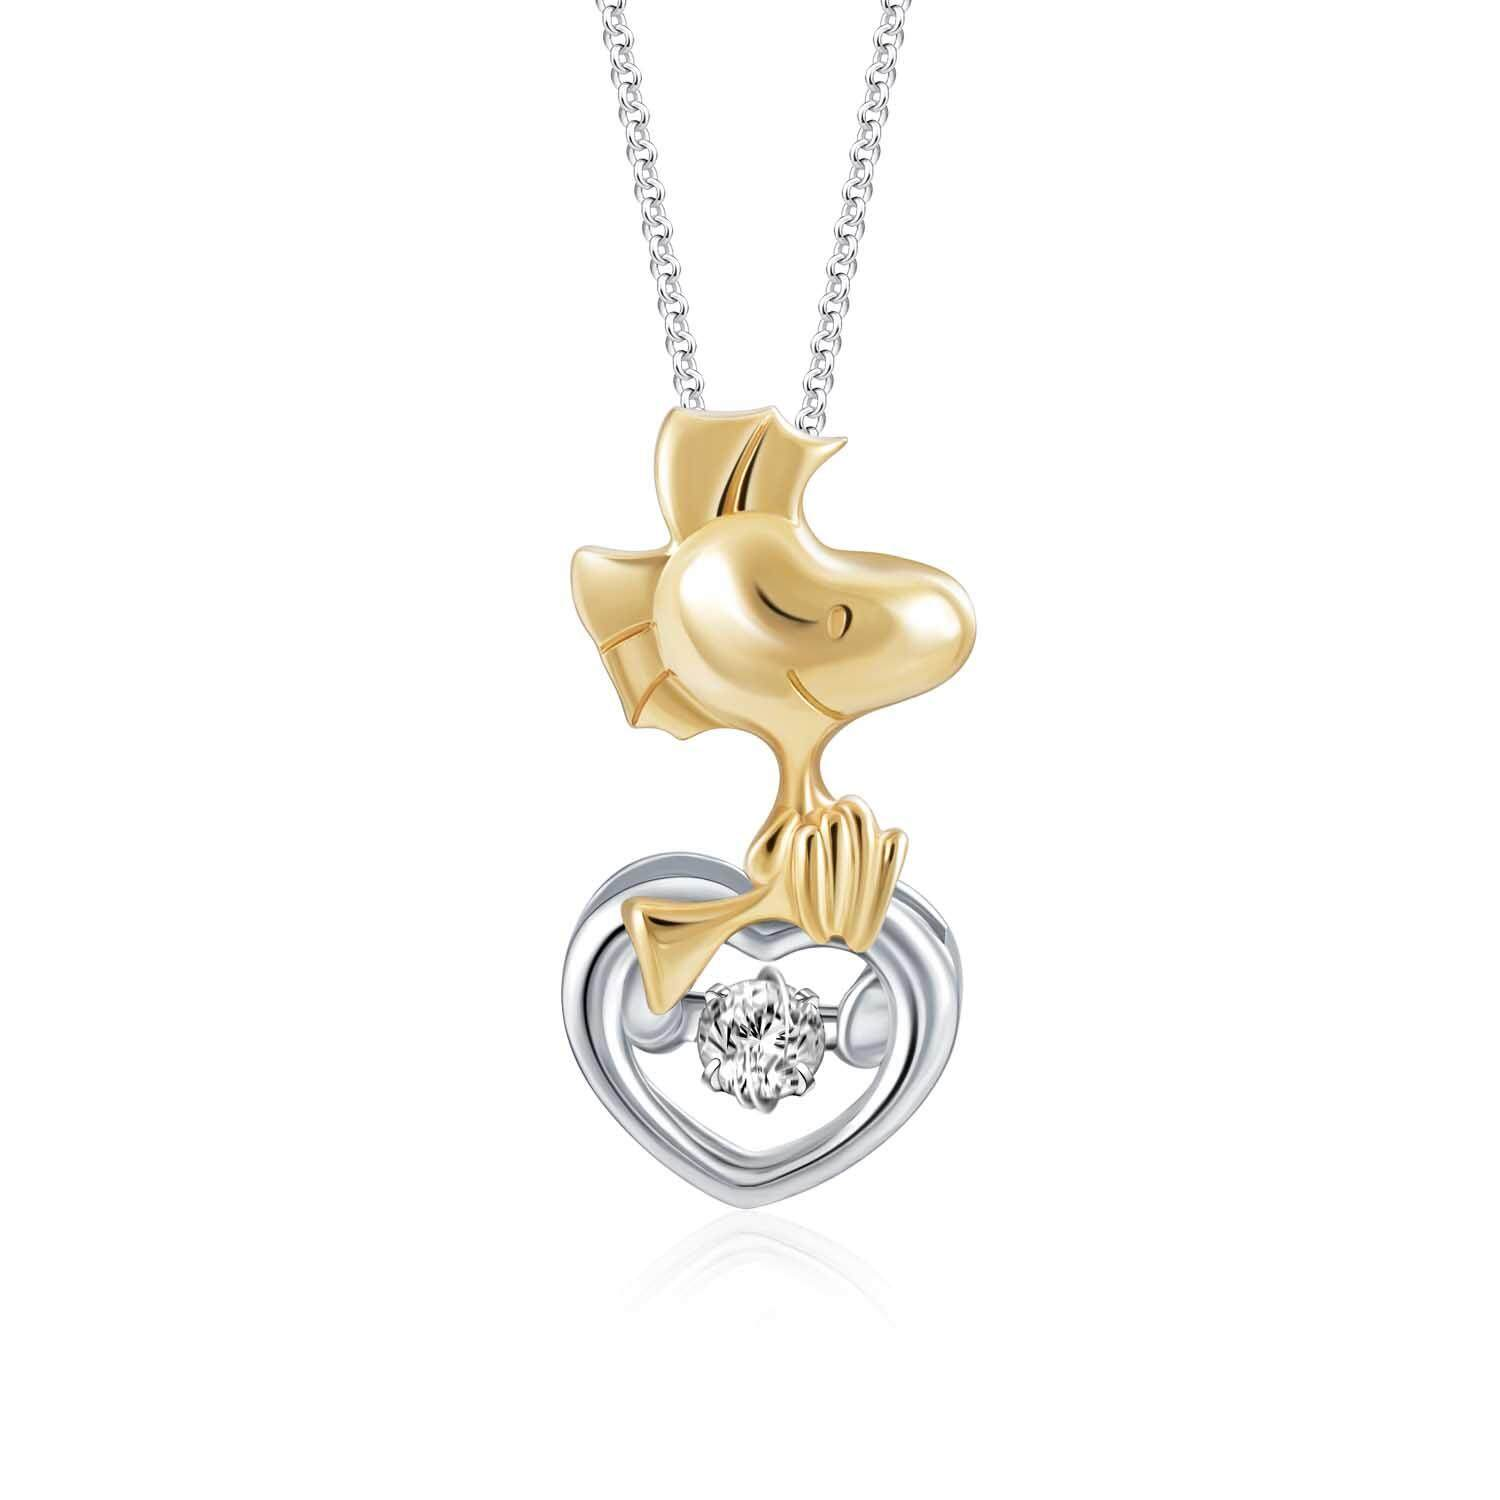 Sk Jewellery Buy At Best Price In Malaysia Www Cocoa Jewelry Rules Of Love Bracelet Emas Woodstock You Have My Heart Diamond Necklace